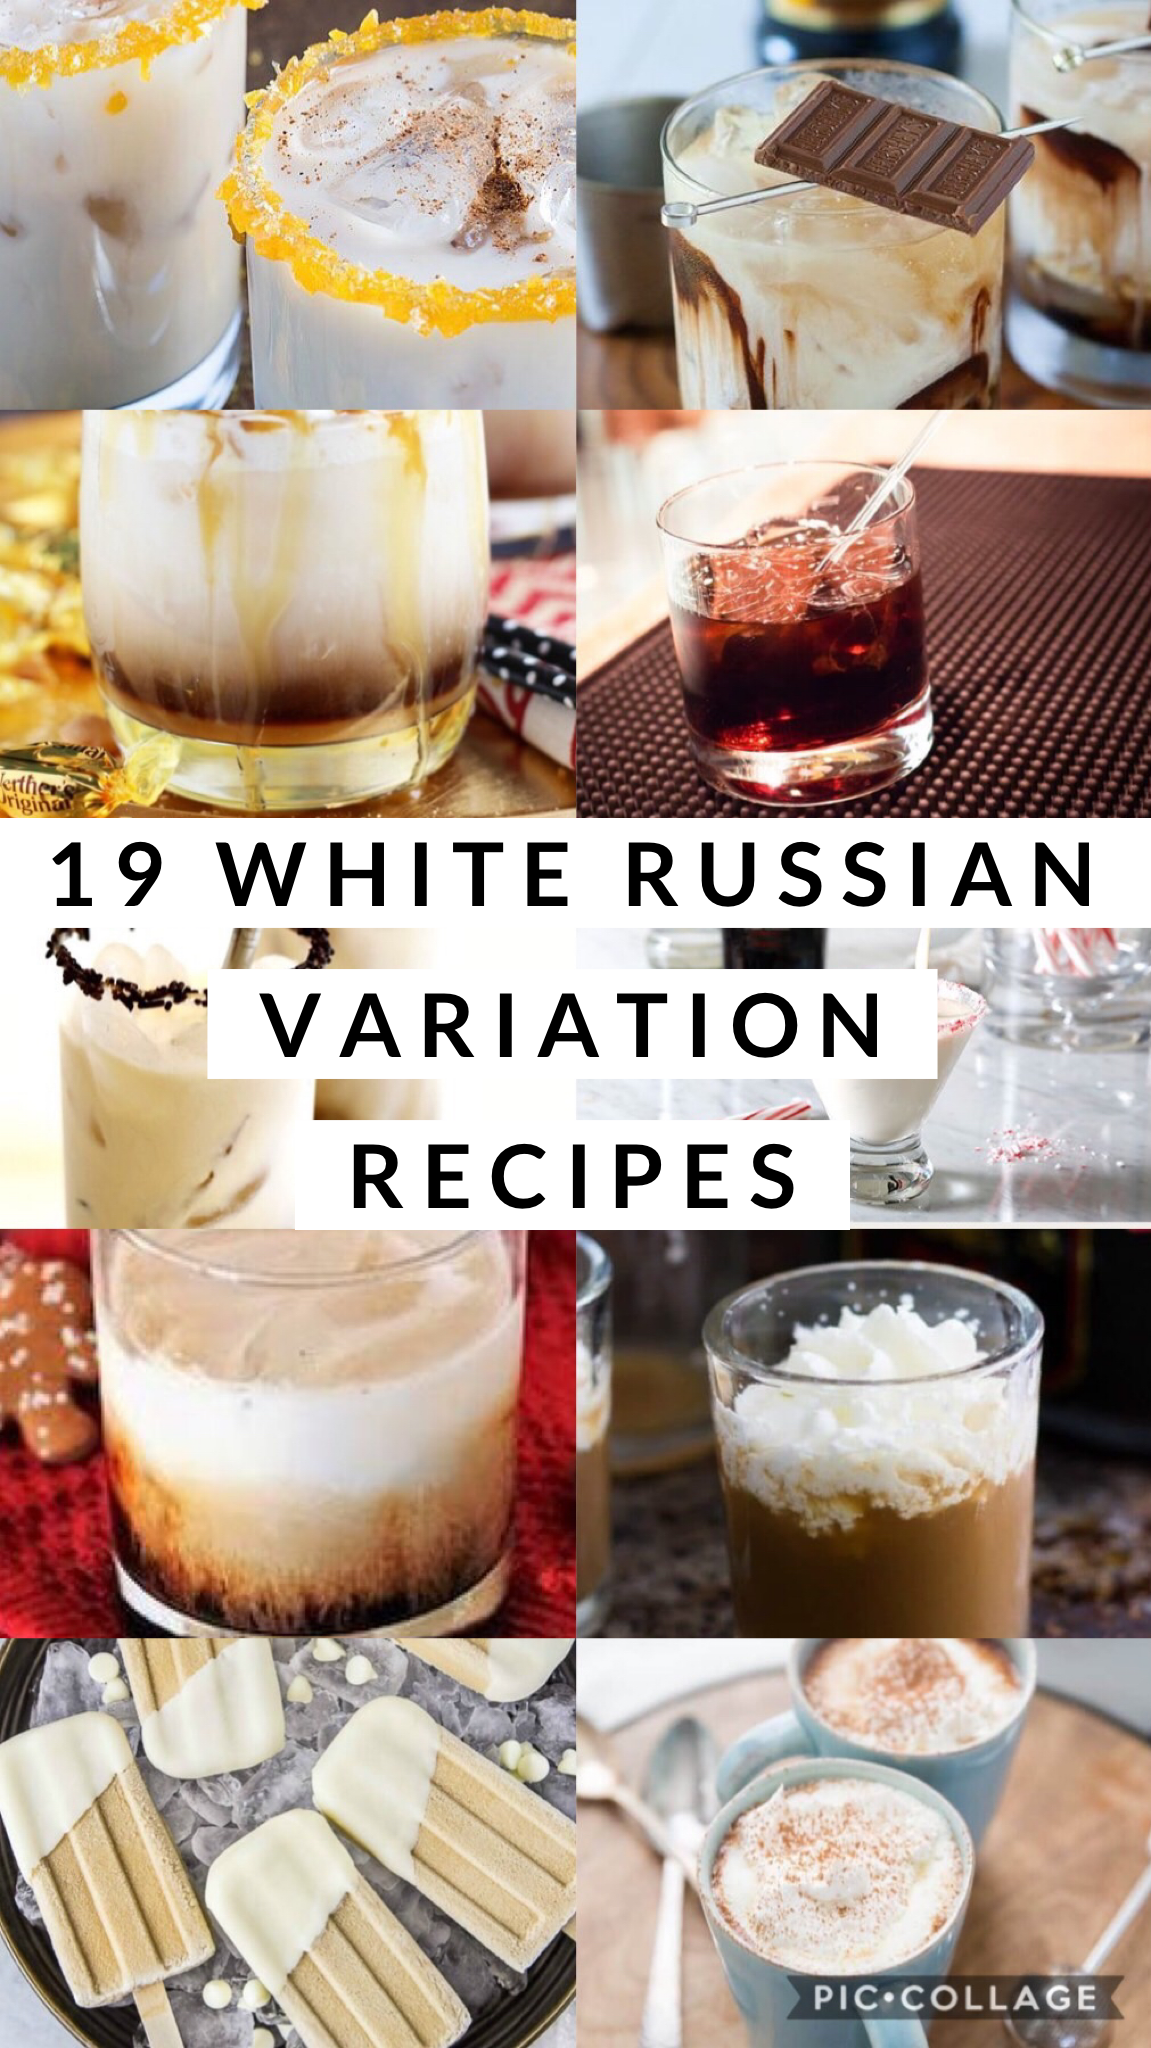 19 White Russian Variation Recipes White Russian Recipes Russian Recipes White Russian